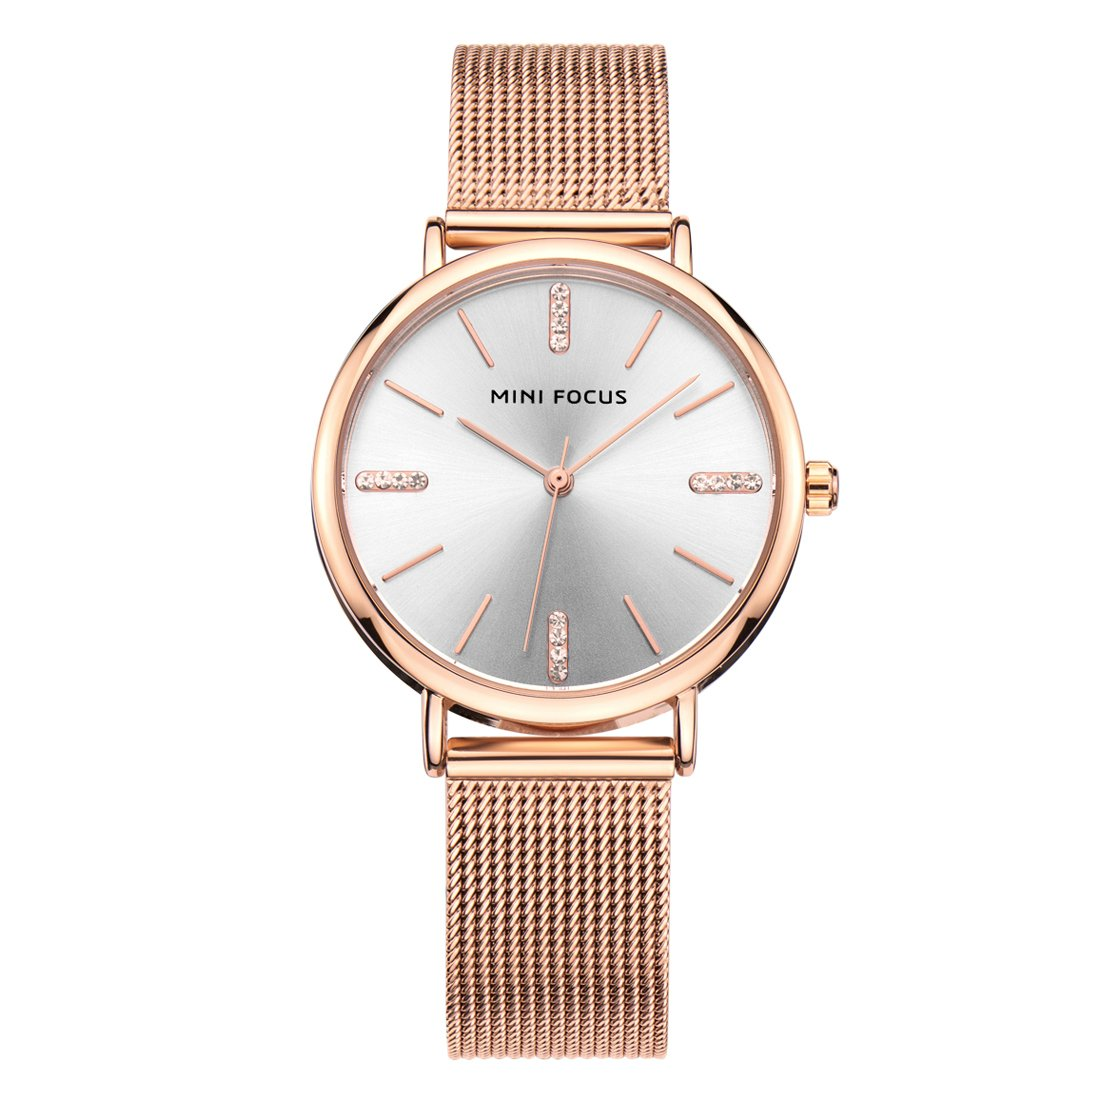 Womens Quartz Watch, Rose Gold Business Casual Fashion Analog Wrist Watches, Waterproof 30M Water Resistant Comfortable Mesh Band Watches